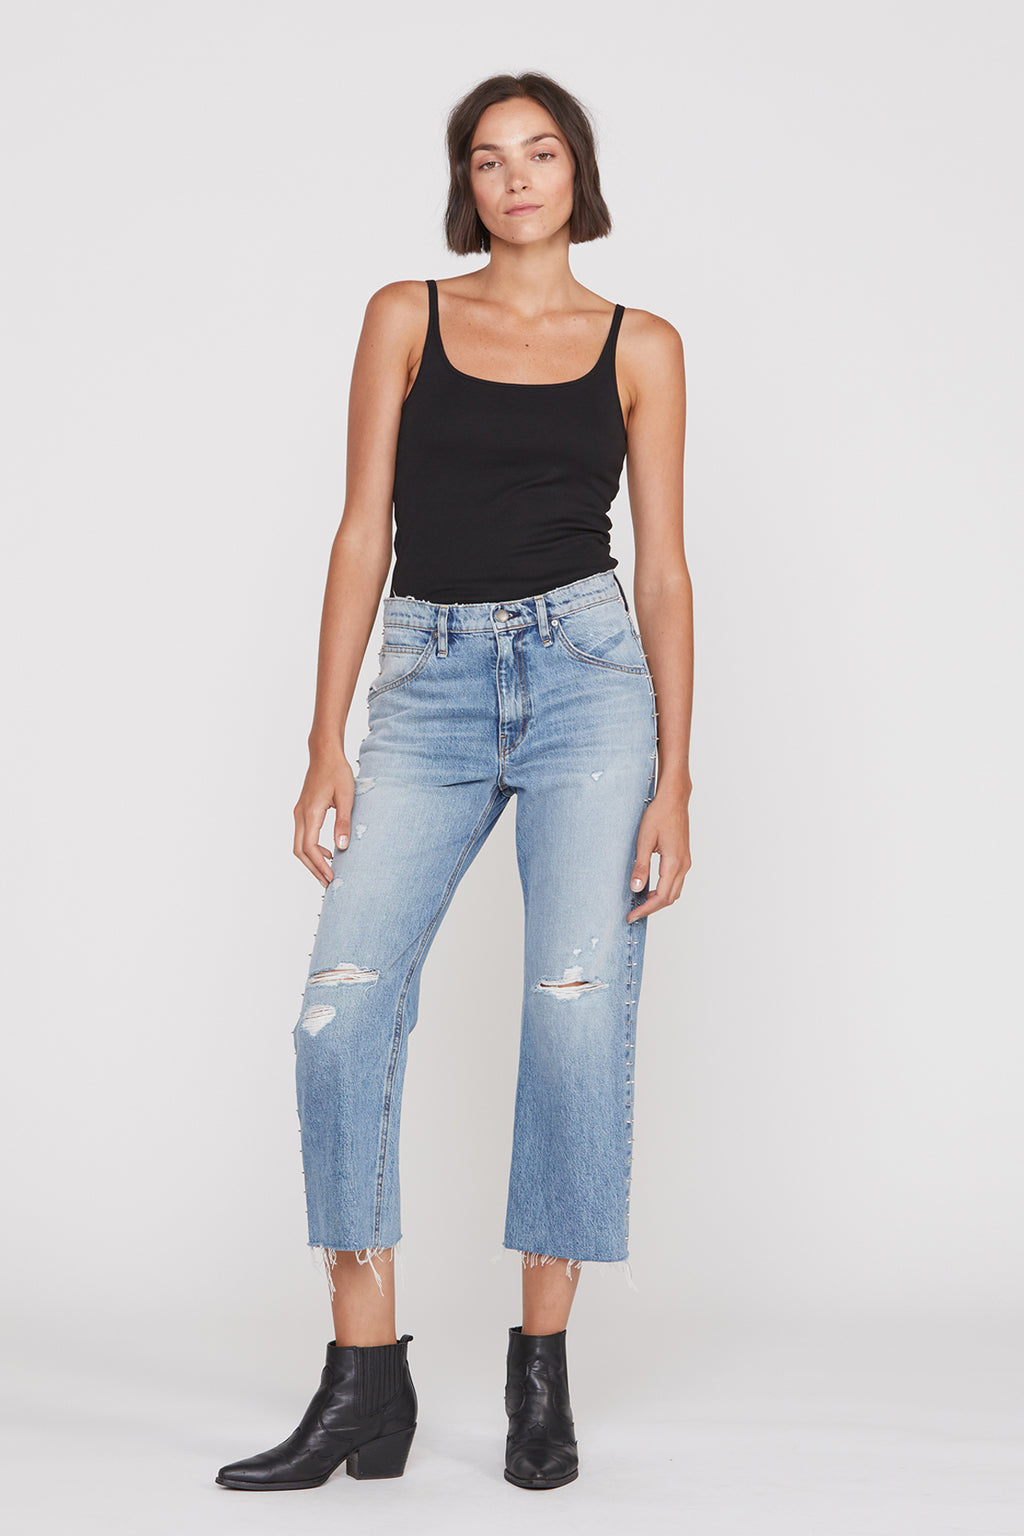 Sloane Extreme Baggy Crop Jean - hudsonjeans